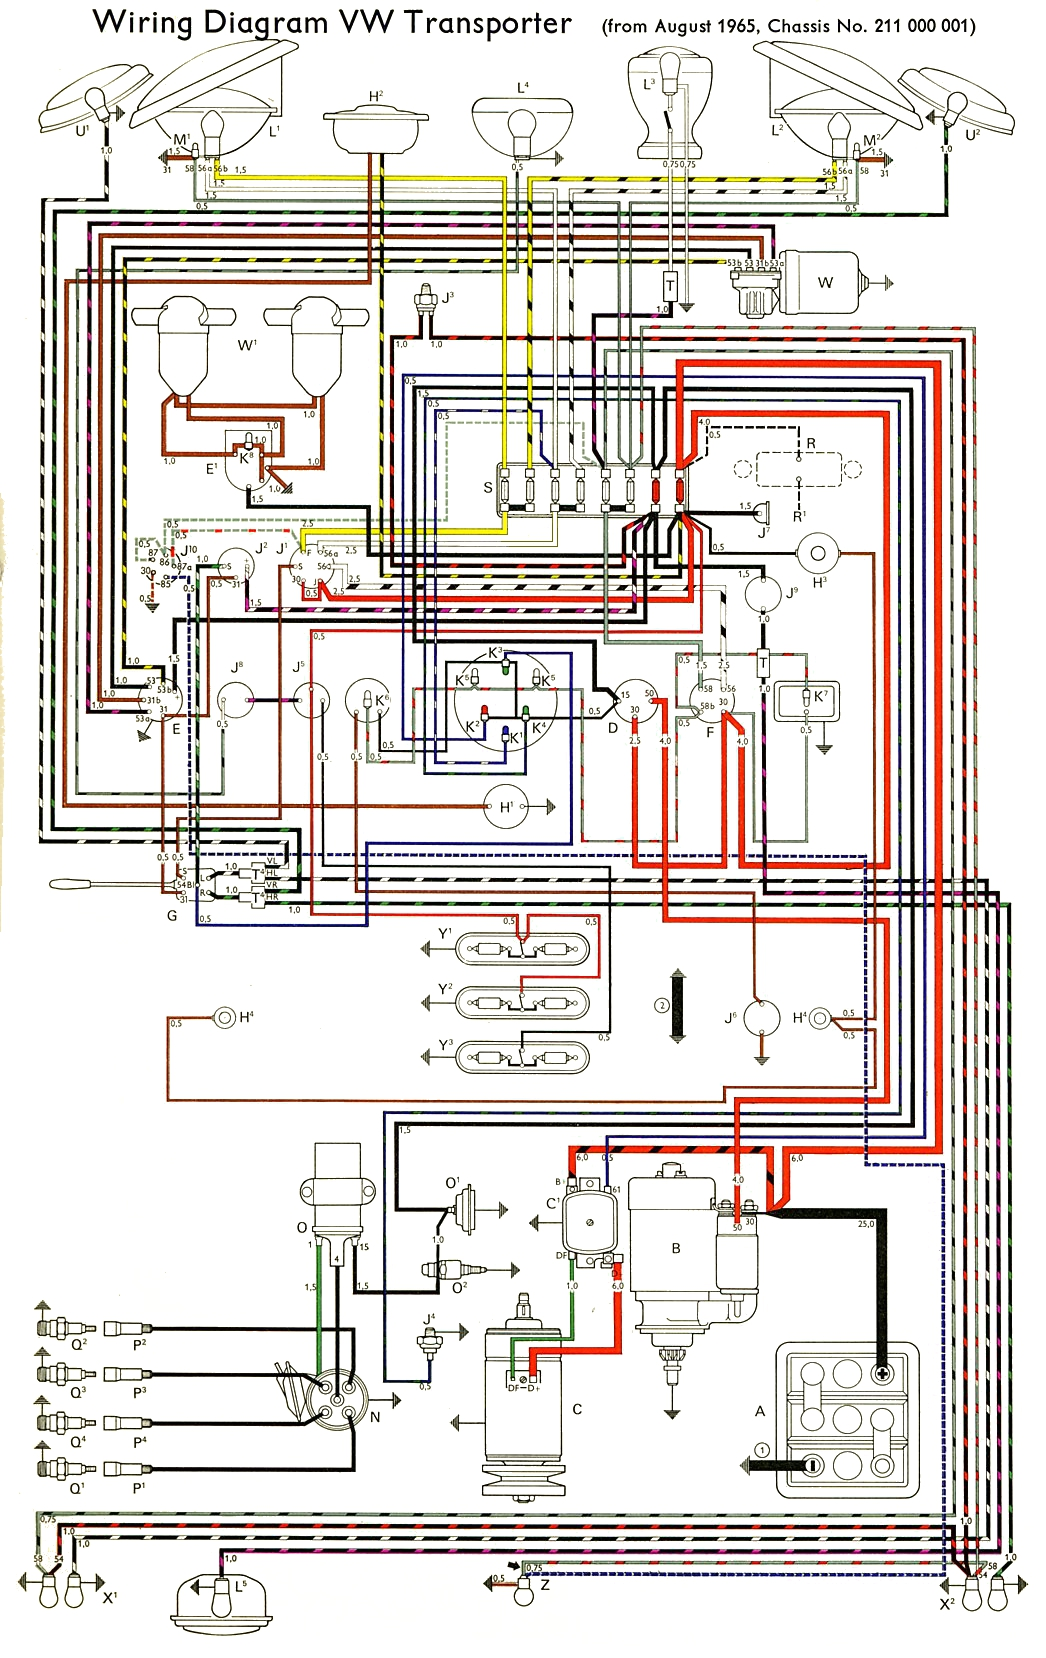 Type 2 Wiring Diagrams Wire Harness Testing